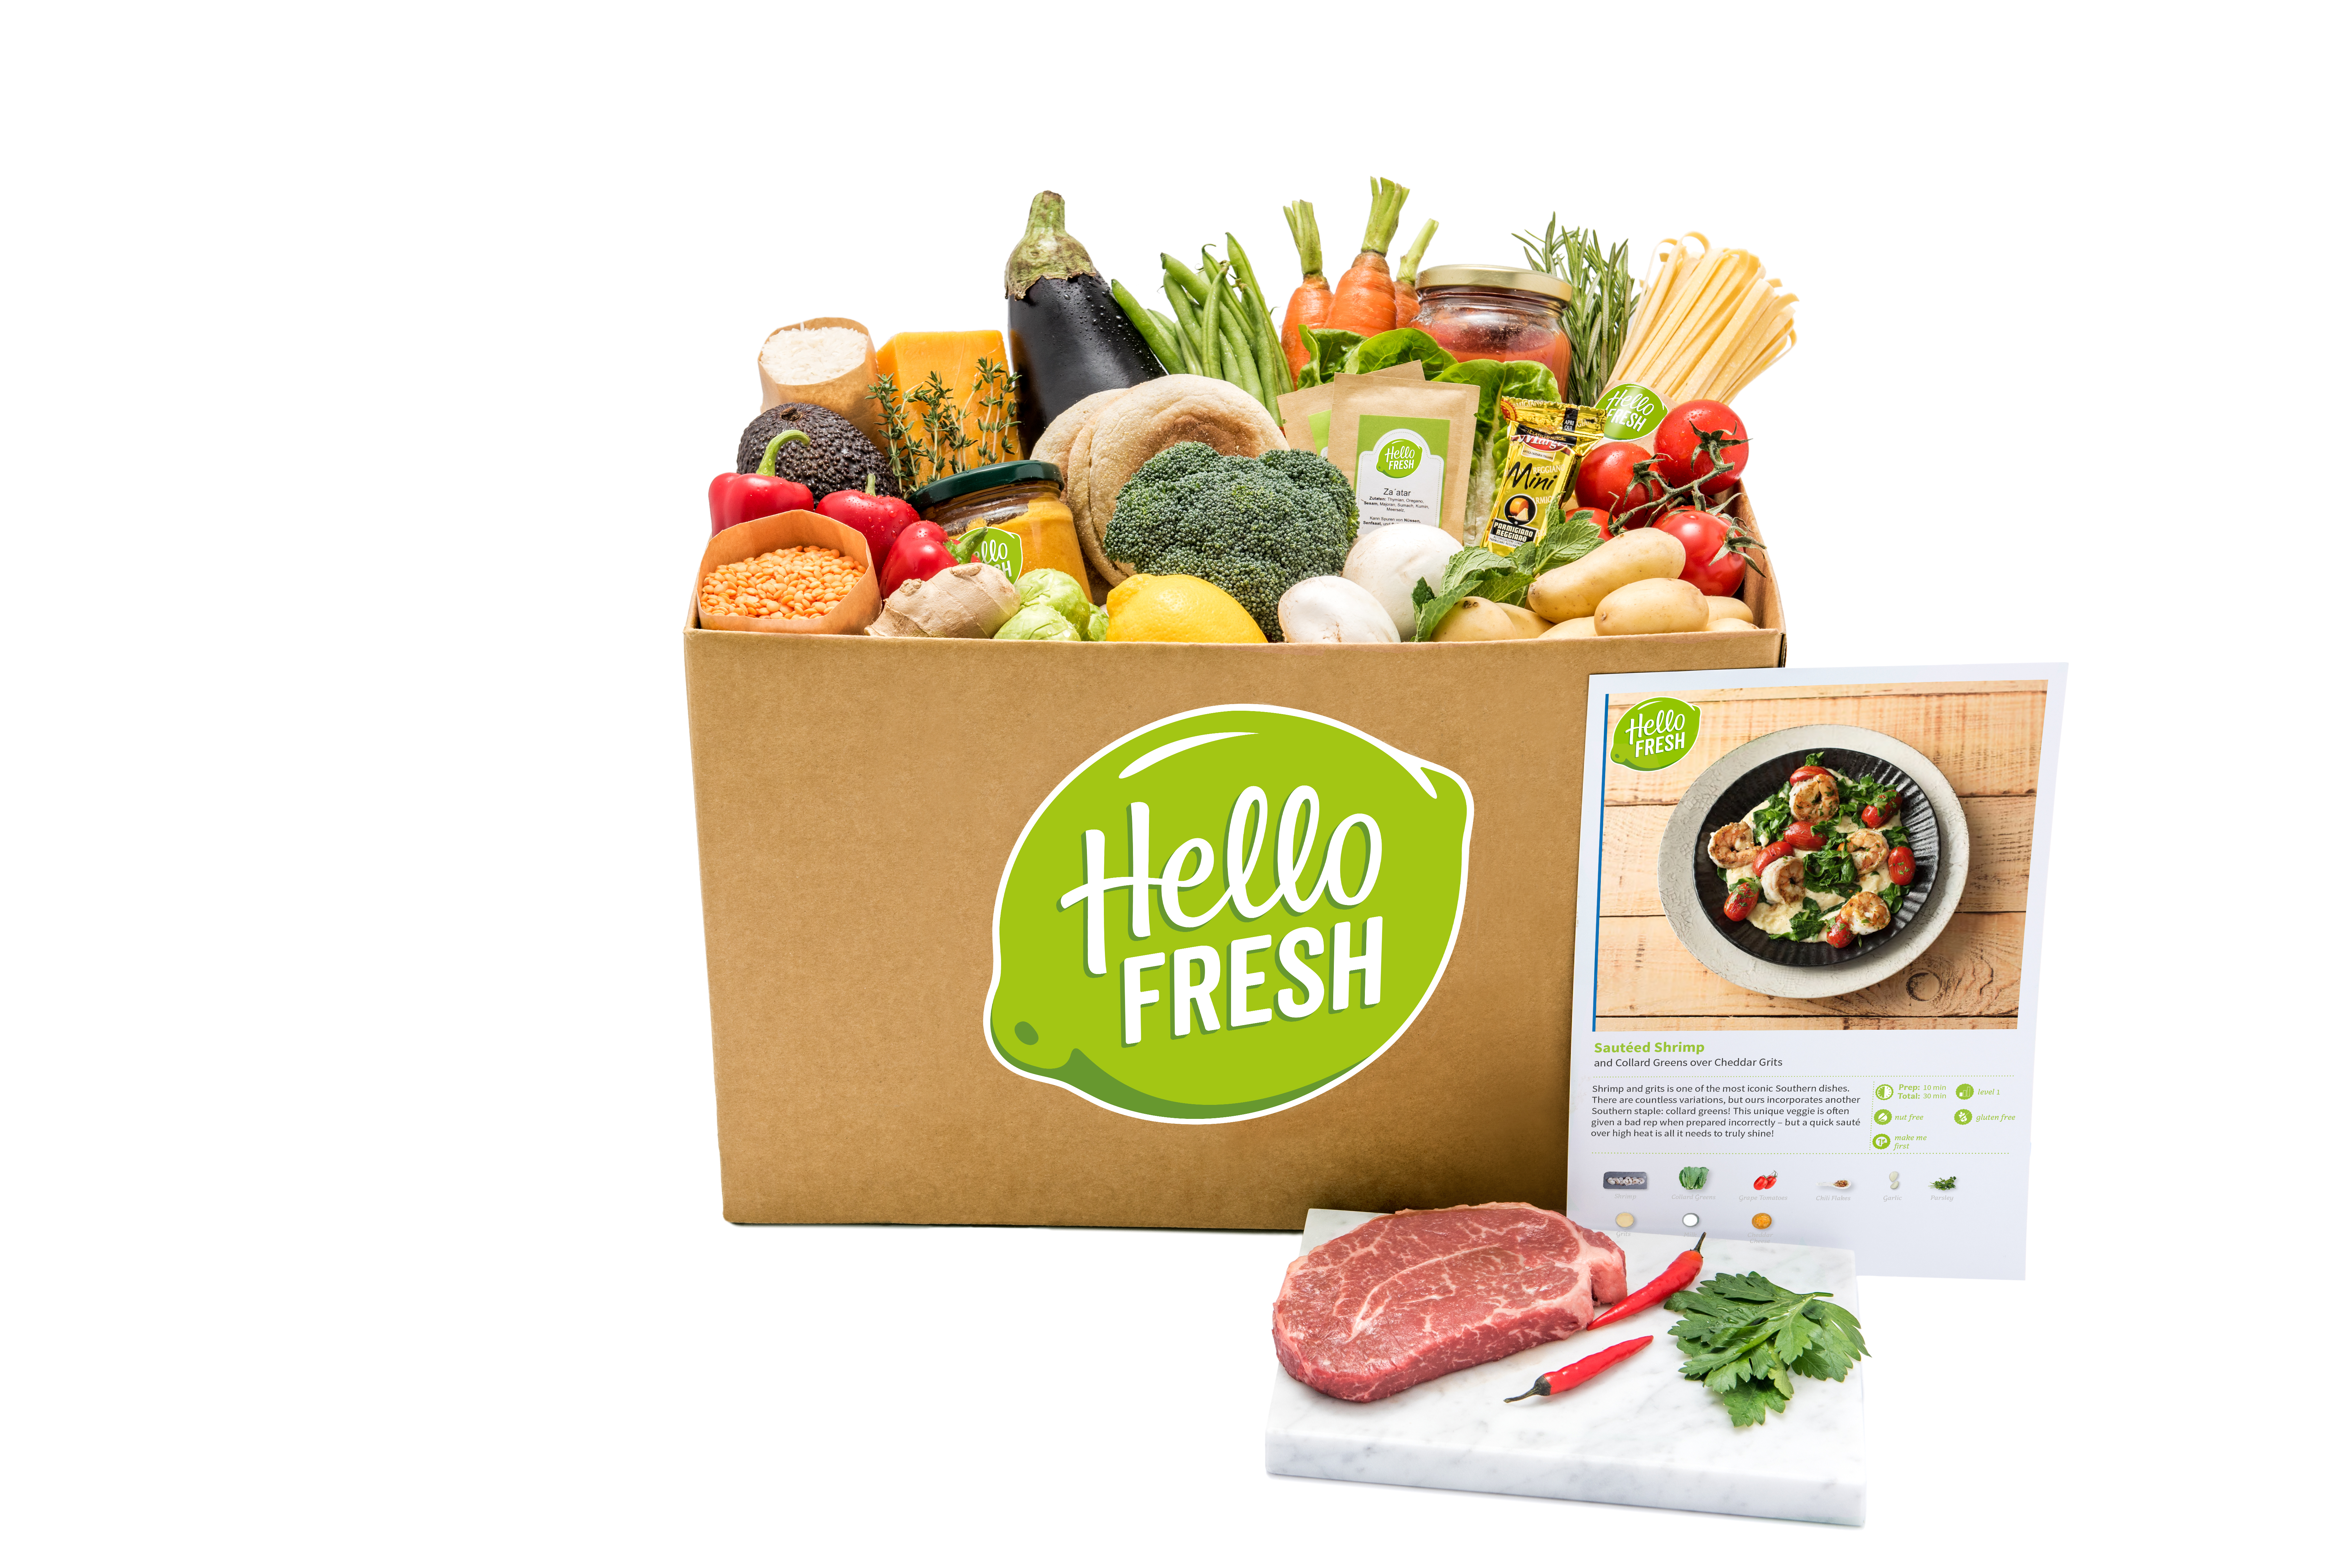 https://cdn.hellofresh.com/au/cms/press/HF_Box_Classic.jpg